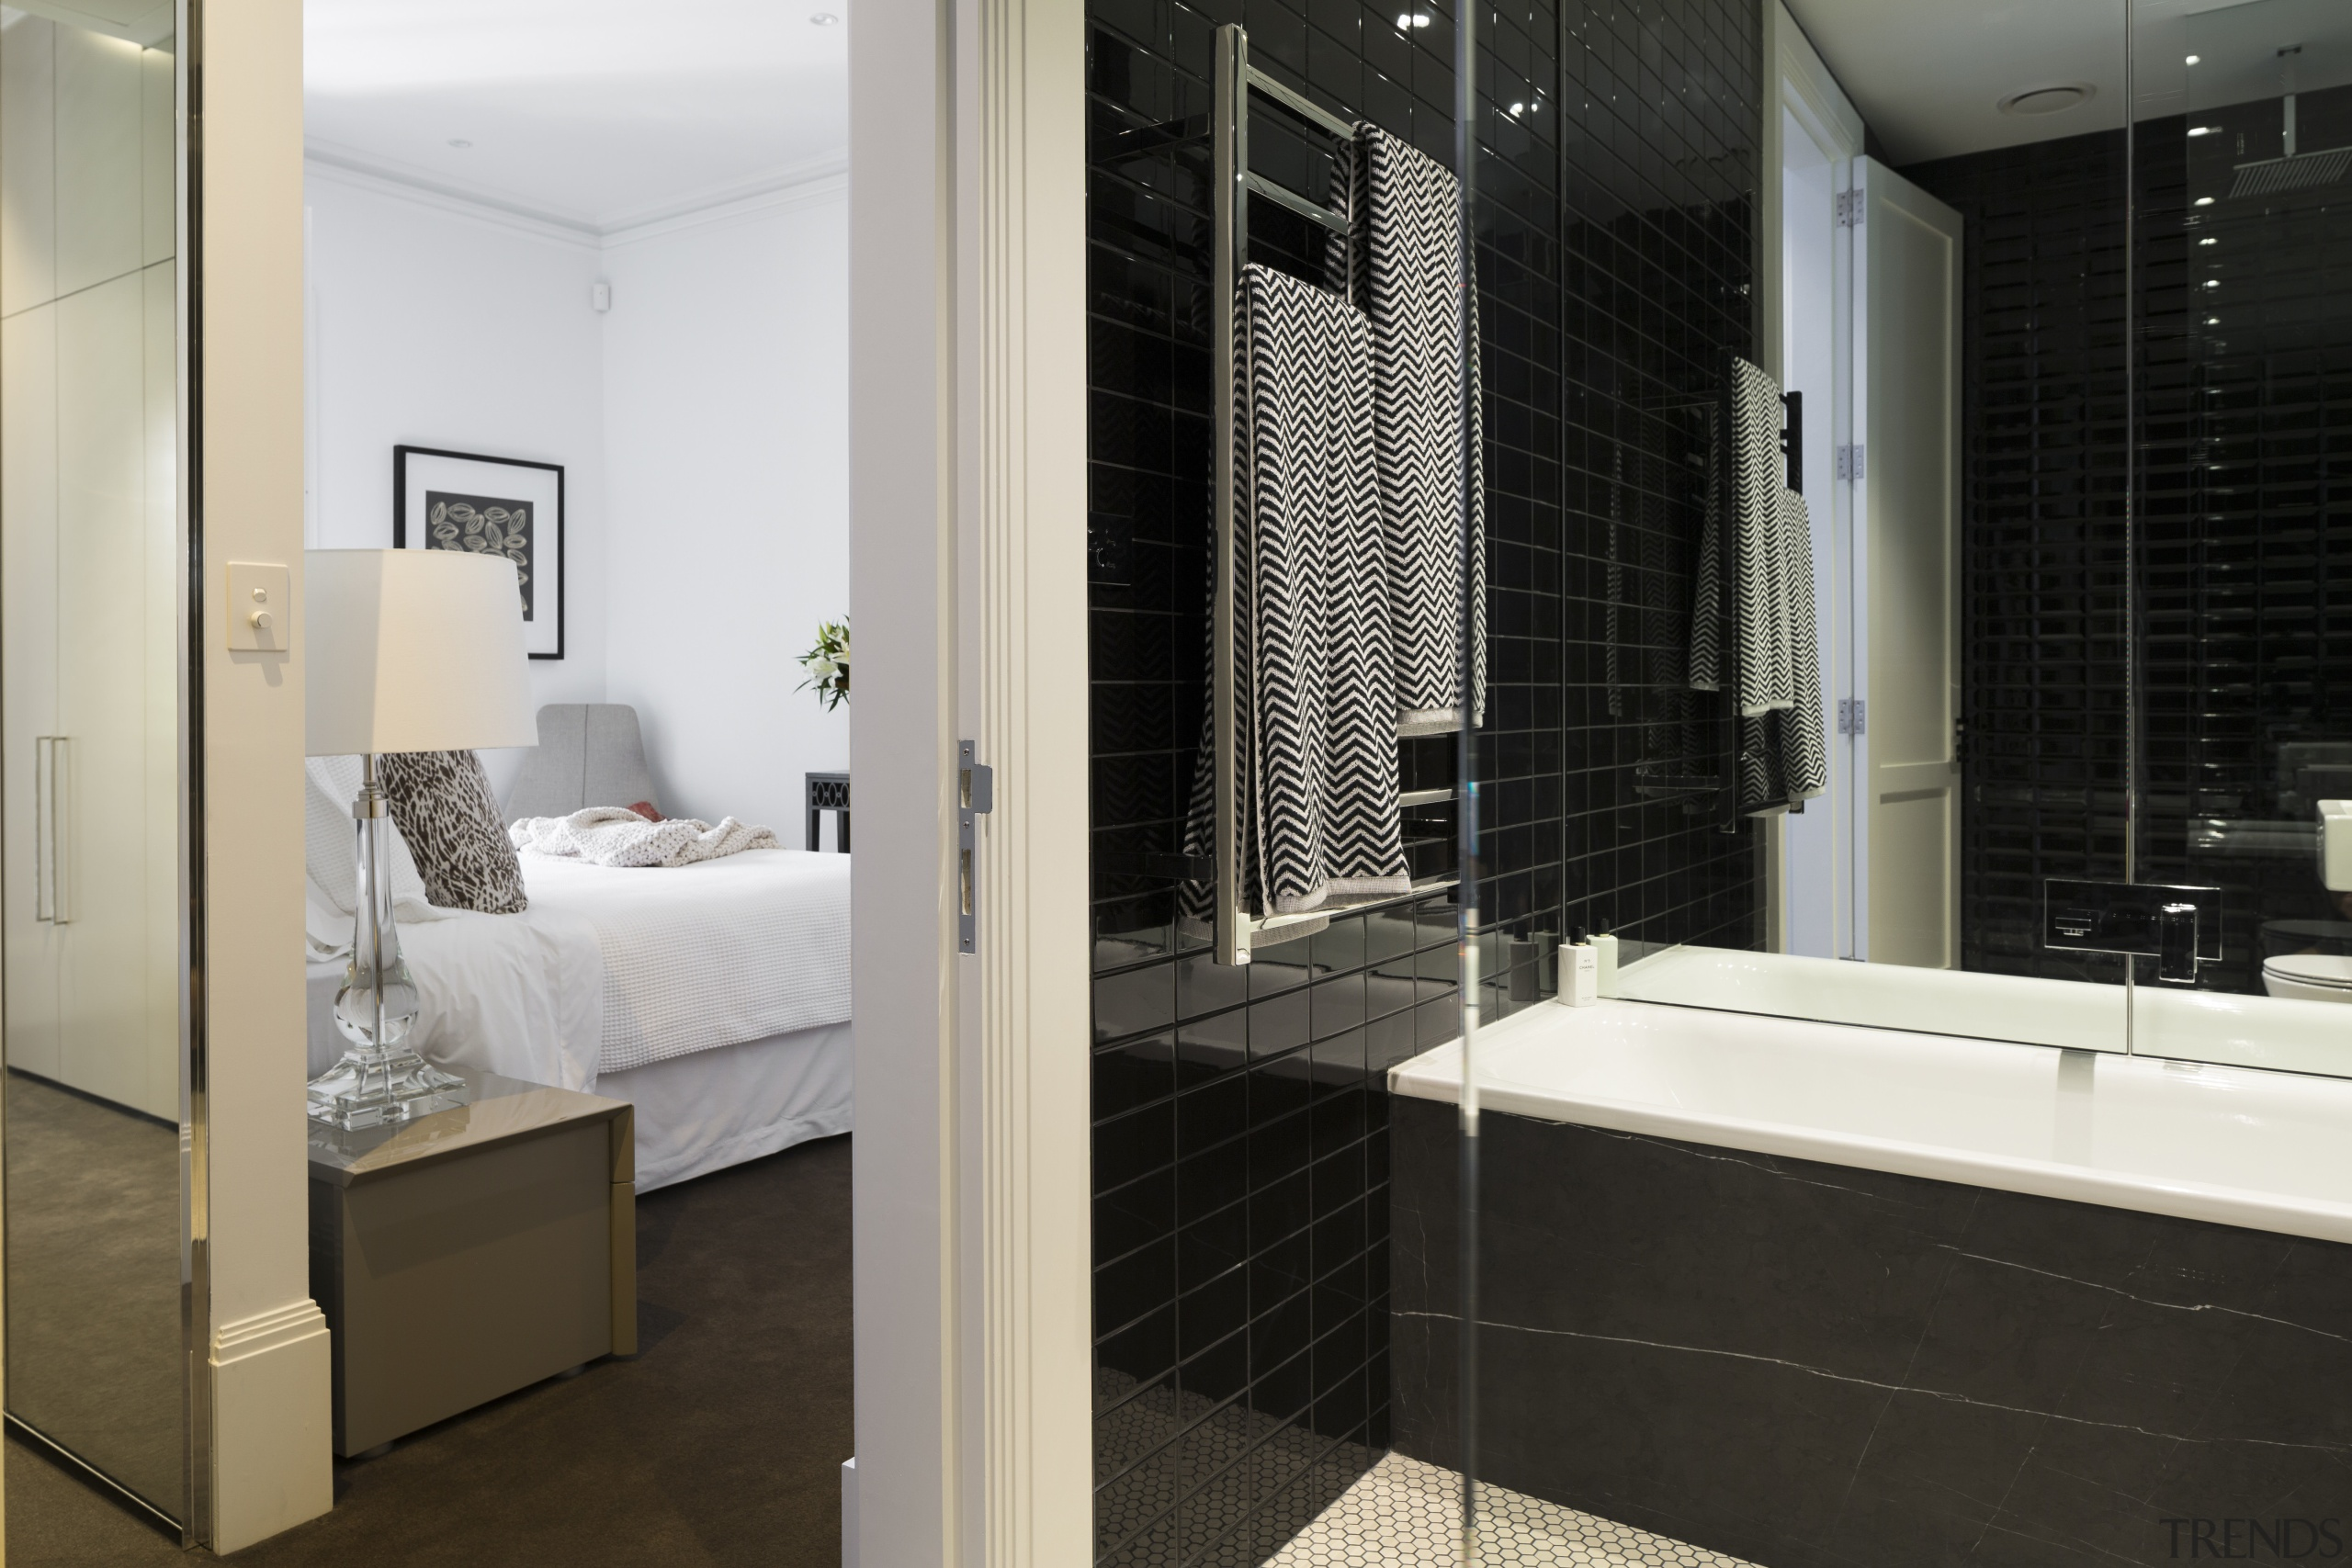 This renovated city residence now has three and bathroom, floor, flooring, interior design, room, suite, black, gray